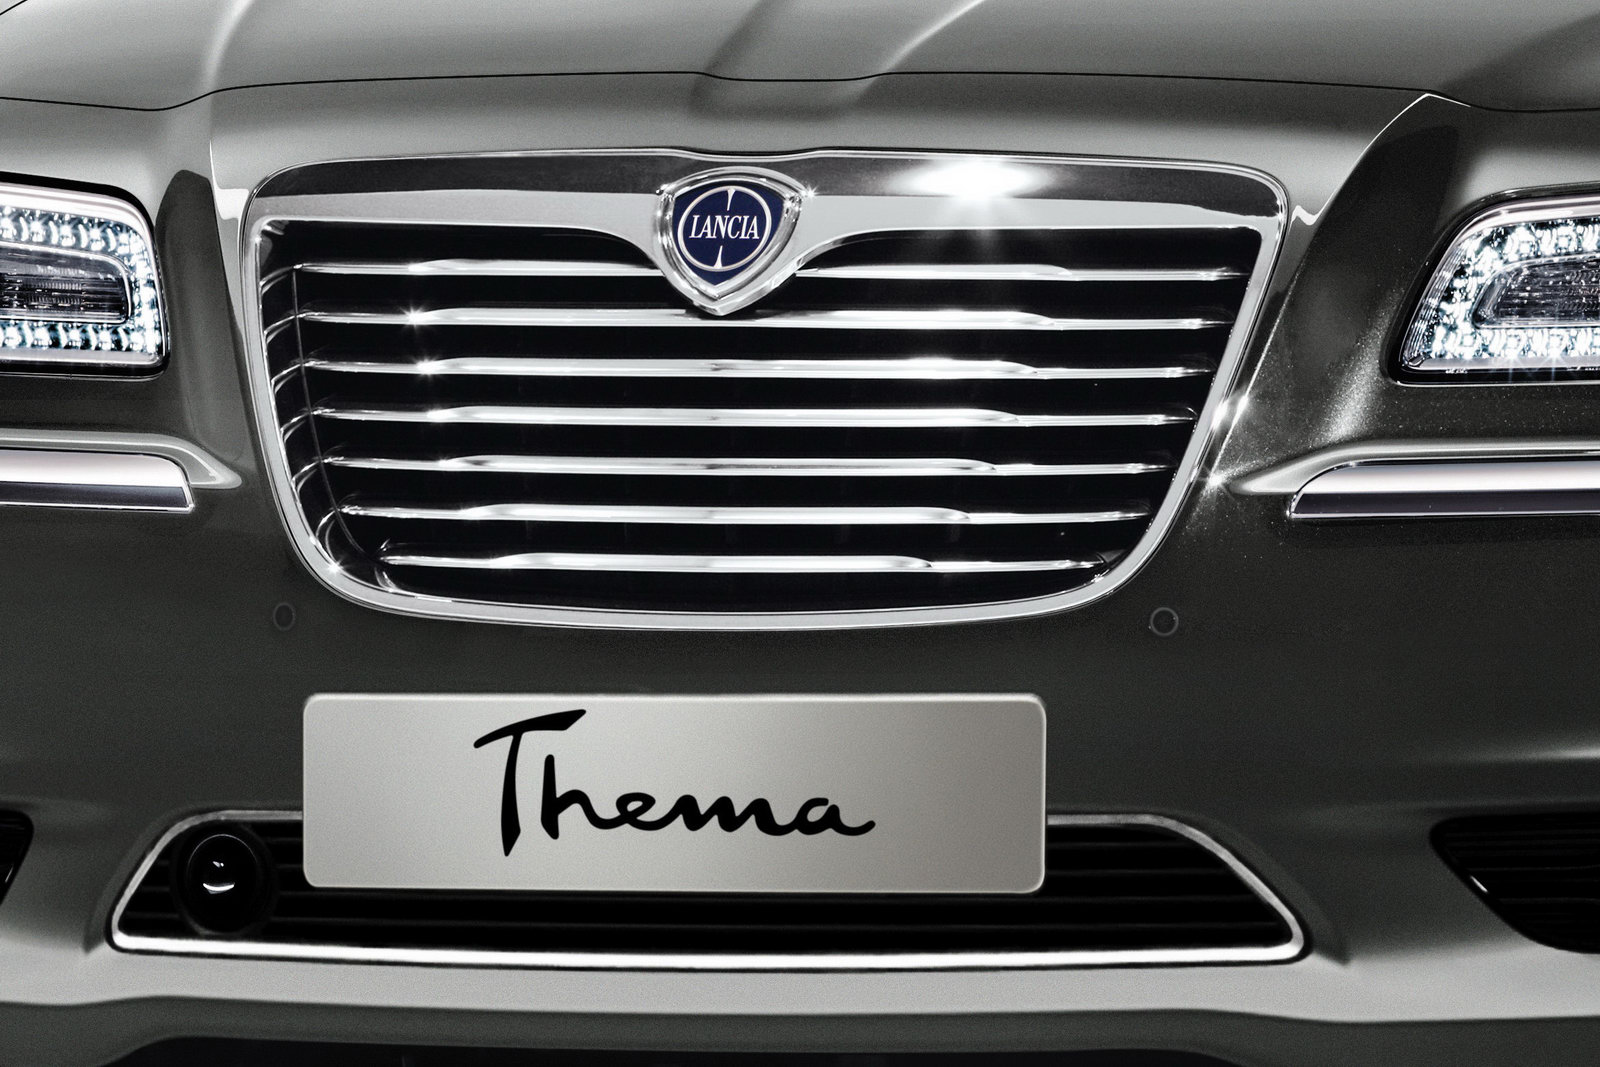 lancia thema (lx) 2012 images